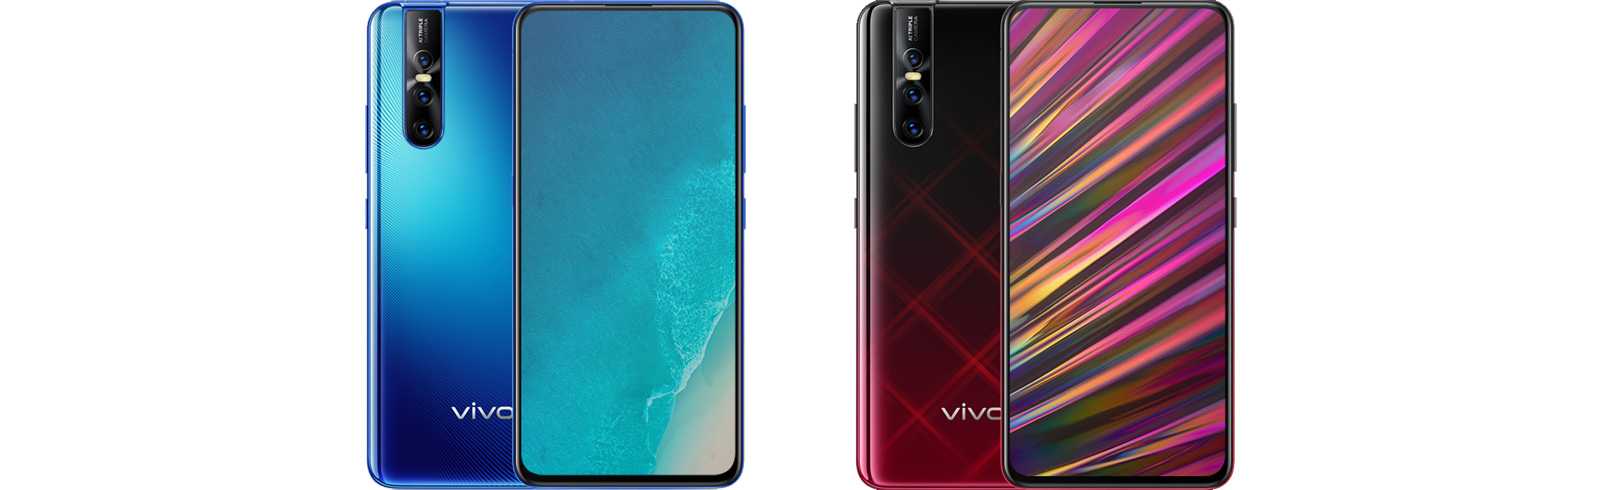 Vivo V15 Pro and Vivo V15 go official in India